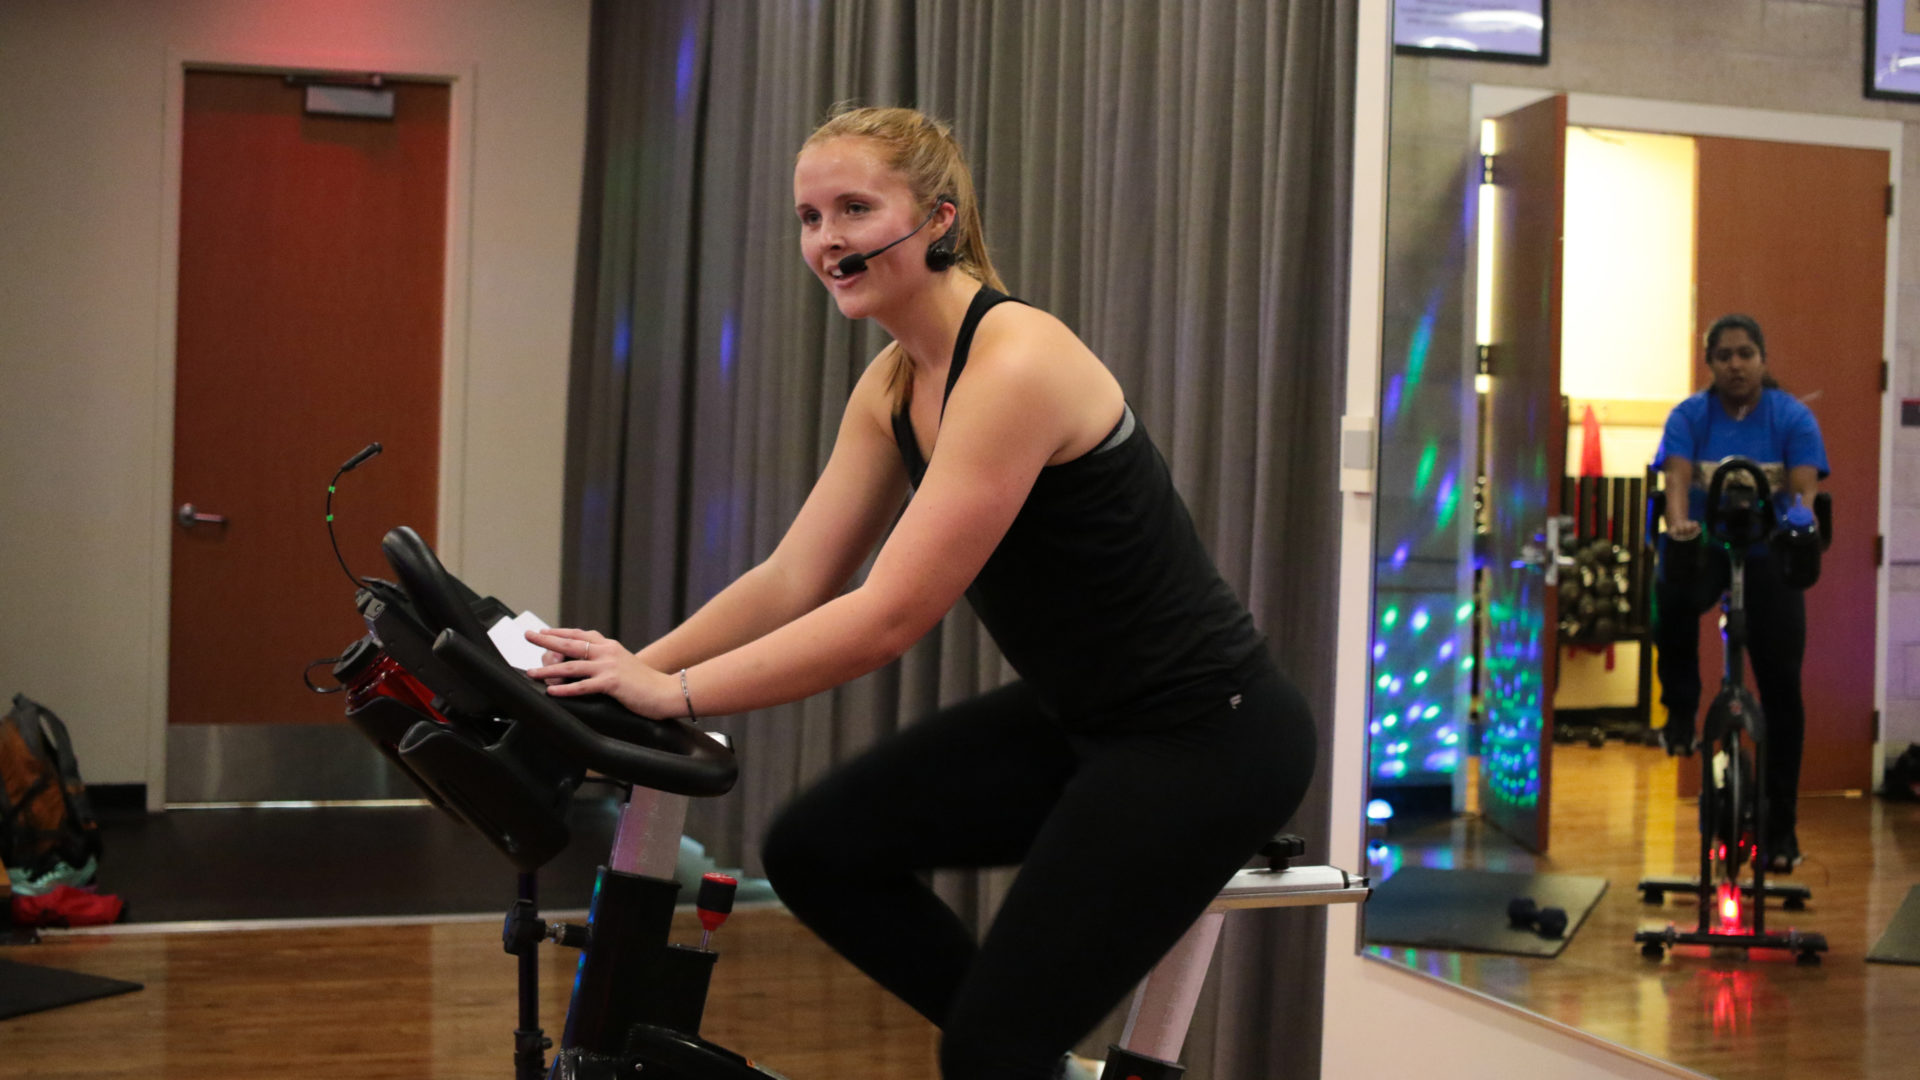 Katherine Mansfield teaching group fitness cycling